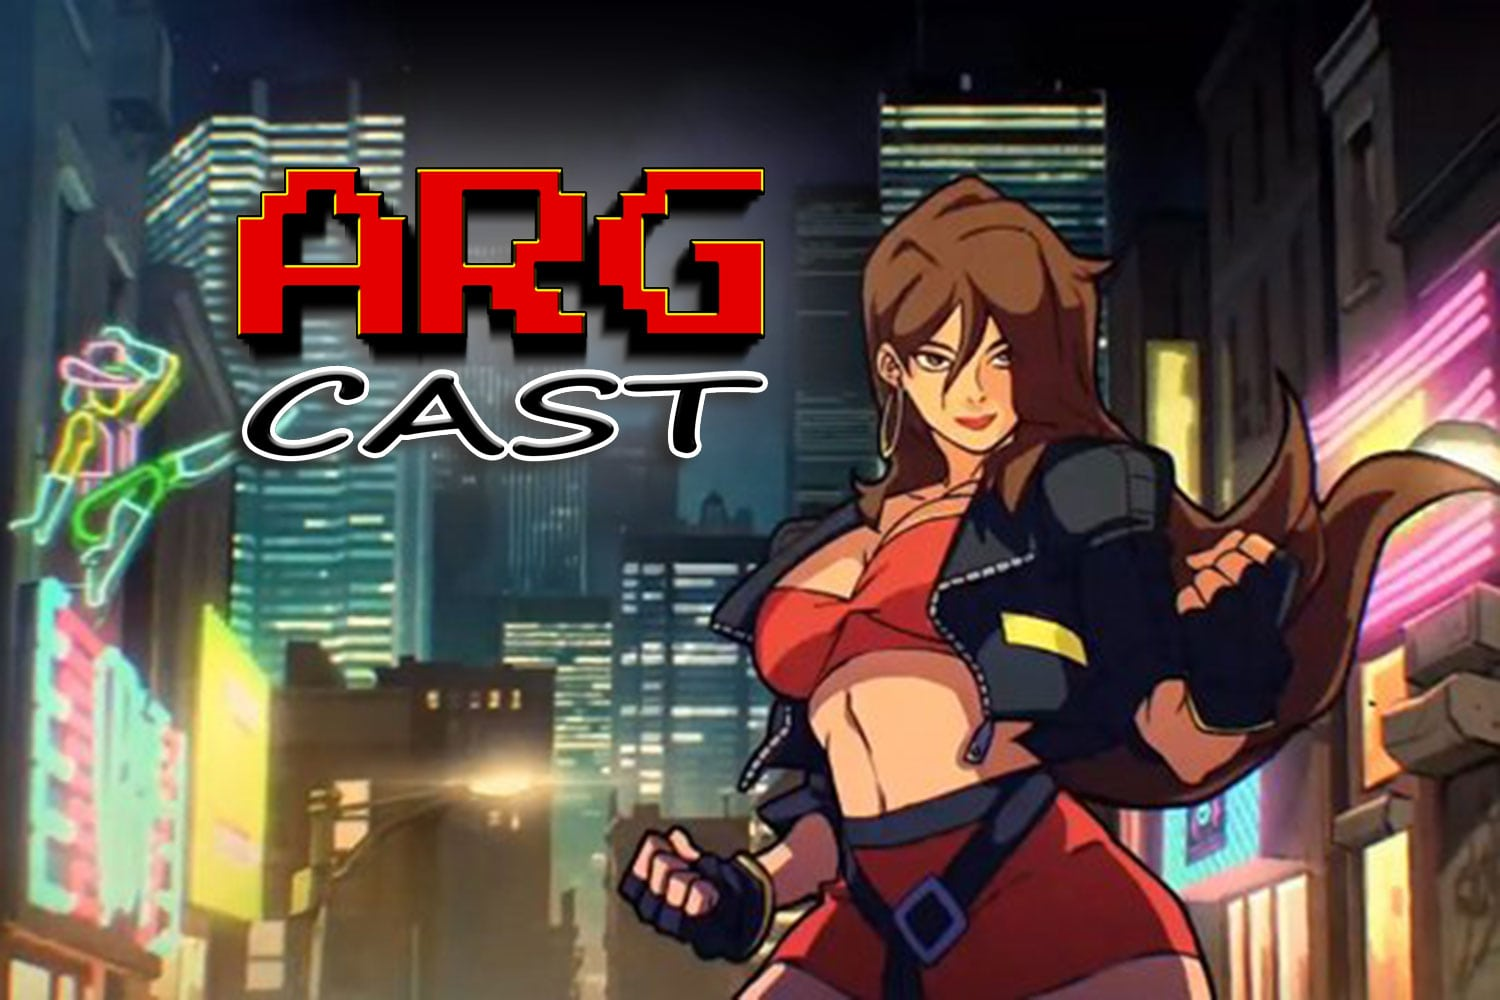 ARGcast #126: PAX West 2018 Preview with Justin Brunelle